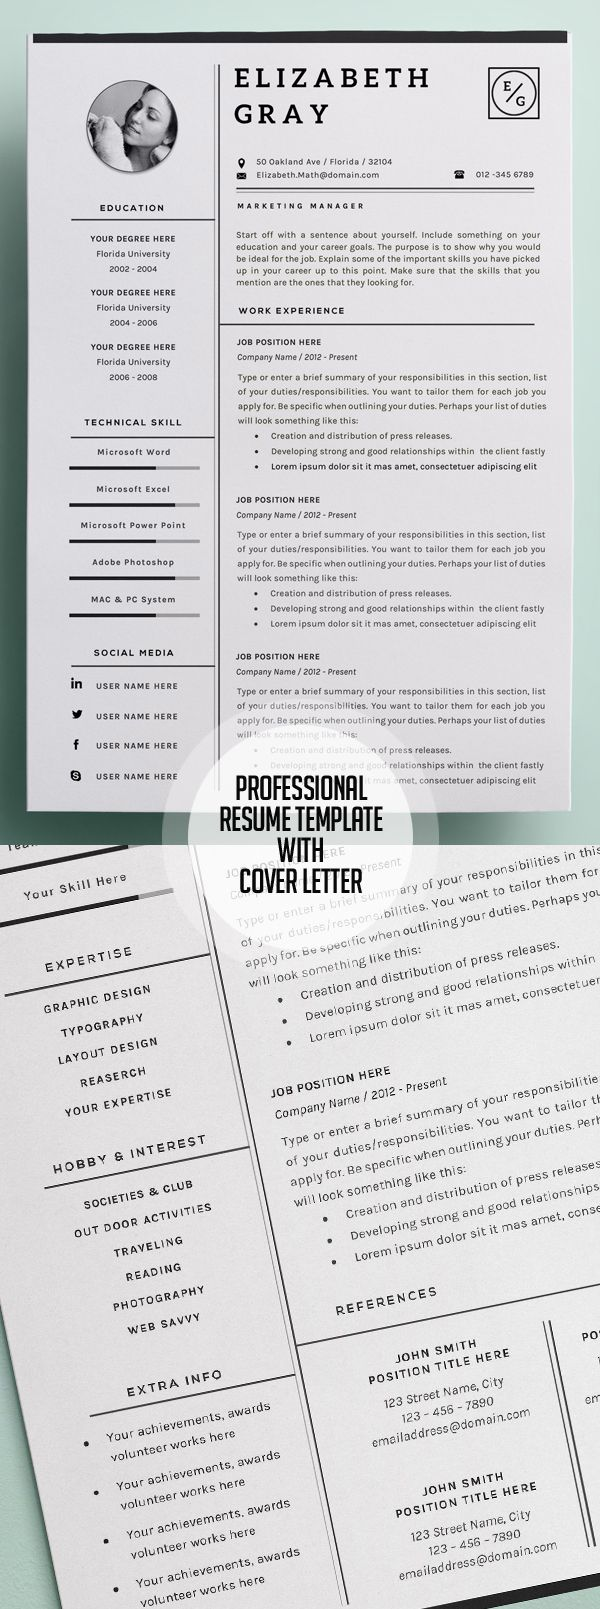 Opposenewapstandardsus  Mesmerizing  Resume Ideas On Pinterest  Resume Resume Templates And  With Entrancing Professional And Modern Resume Template With Page Cover Cvtemplate With Endearing Sales Objective Resume Also Ideal Resume Format In Addition Sample Cover Letter For A Resume And Should My Resume Be One Page As Well As College Golf Resume Additionally Resume Registered Nurse From Pinterestcom With Opposenewapstandardsus  Entrancing  Resume Ideas On Pinterest  Resume Resume Templates And  With Endearing Professional And Modern Resume Template With Page Cover Cvtemplate And Mesmerizing Sales Objective Resume Also Ideal Resume Format In Addition Sample Cover Letter For A Resume From Pinterestcom